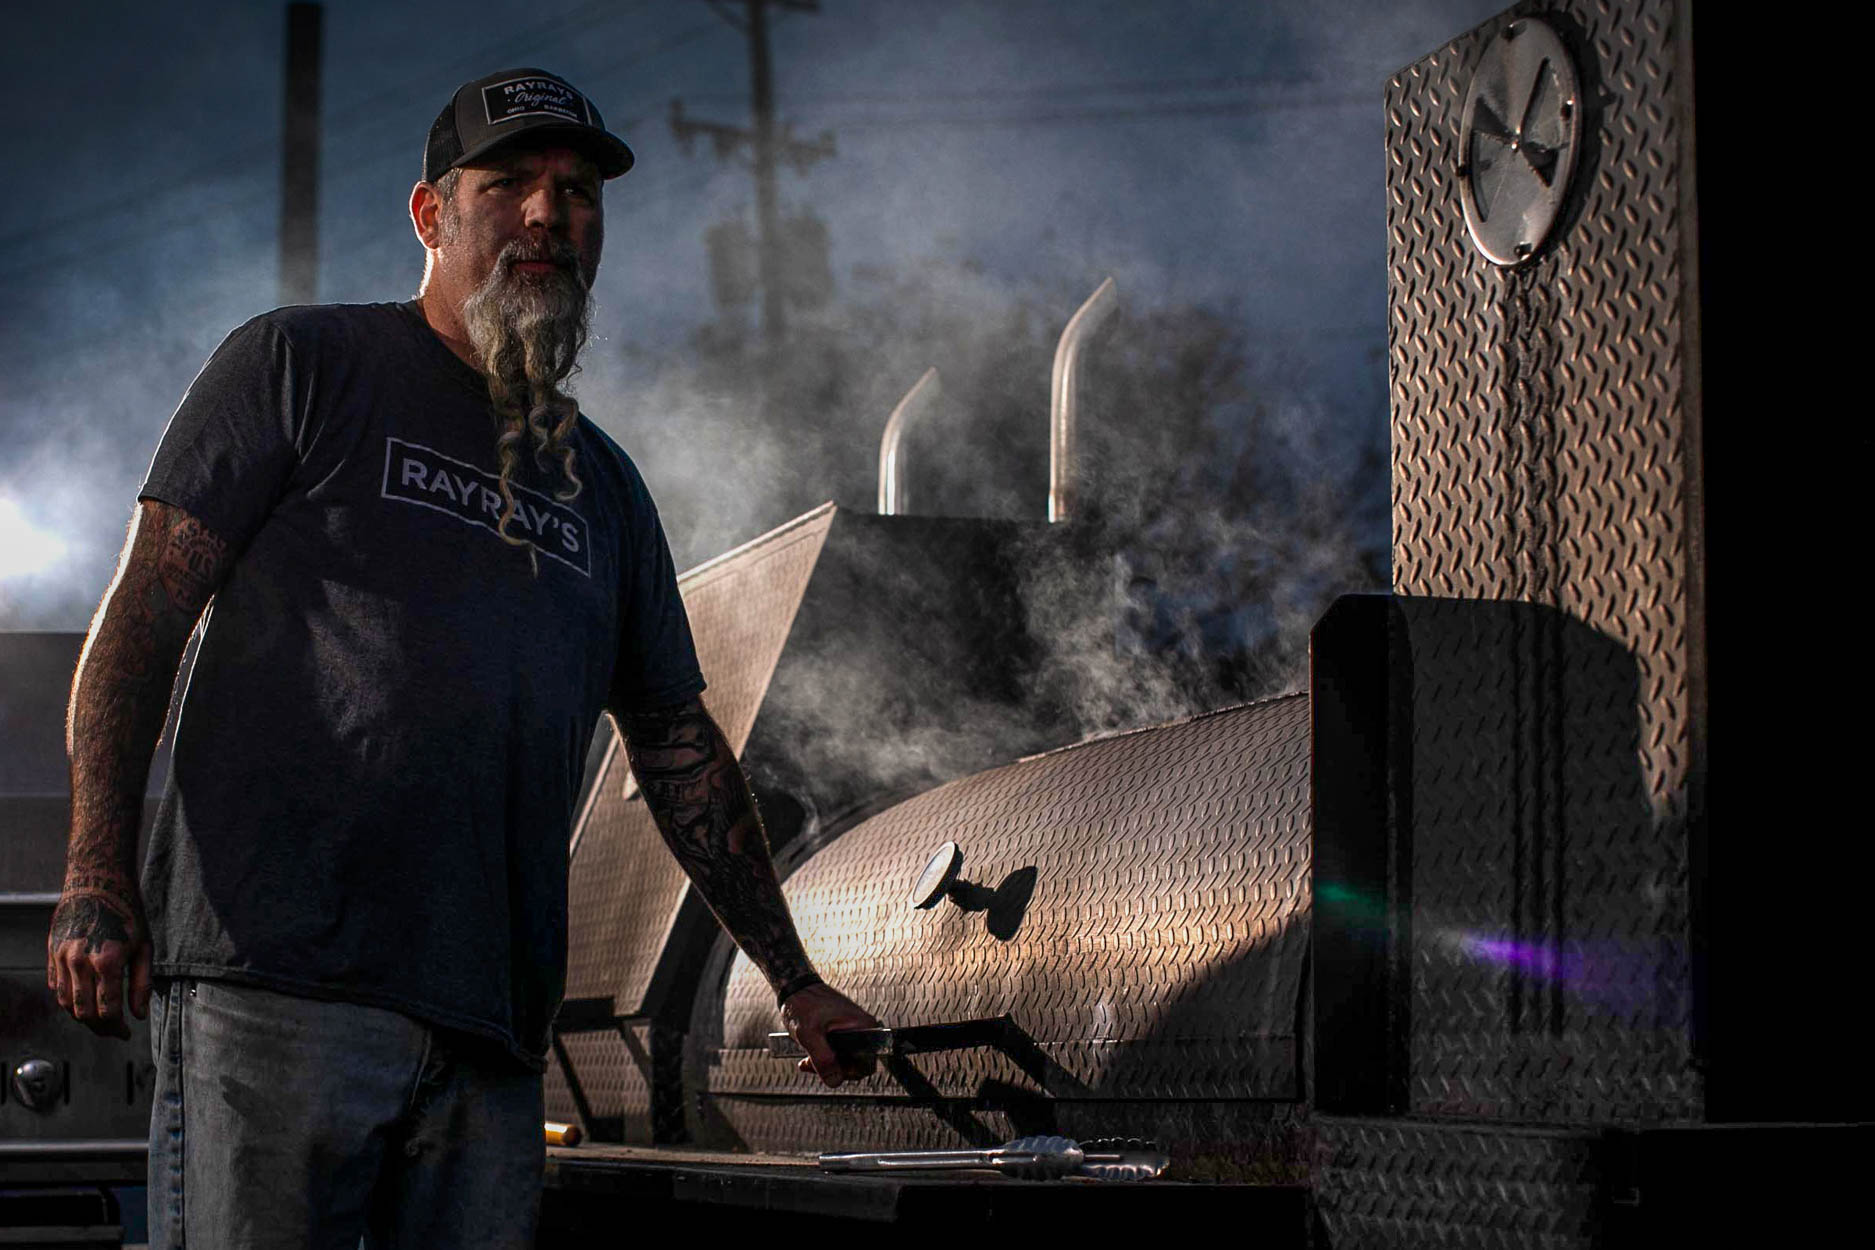 Ray Ray's Hog Pit owner James Anderson at the smoker